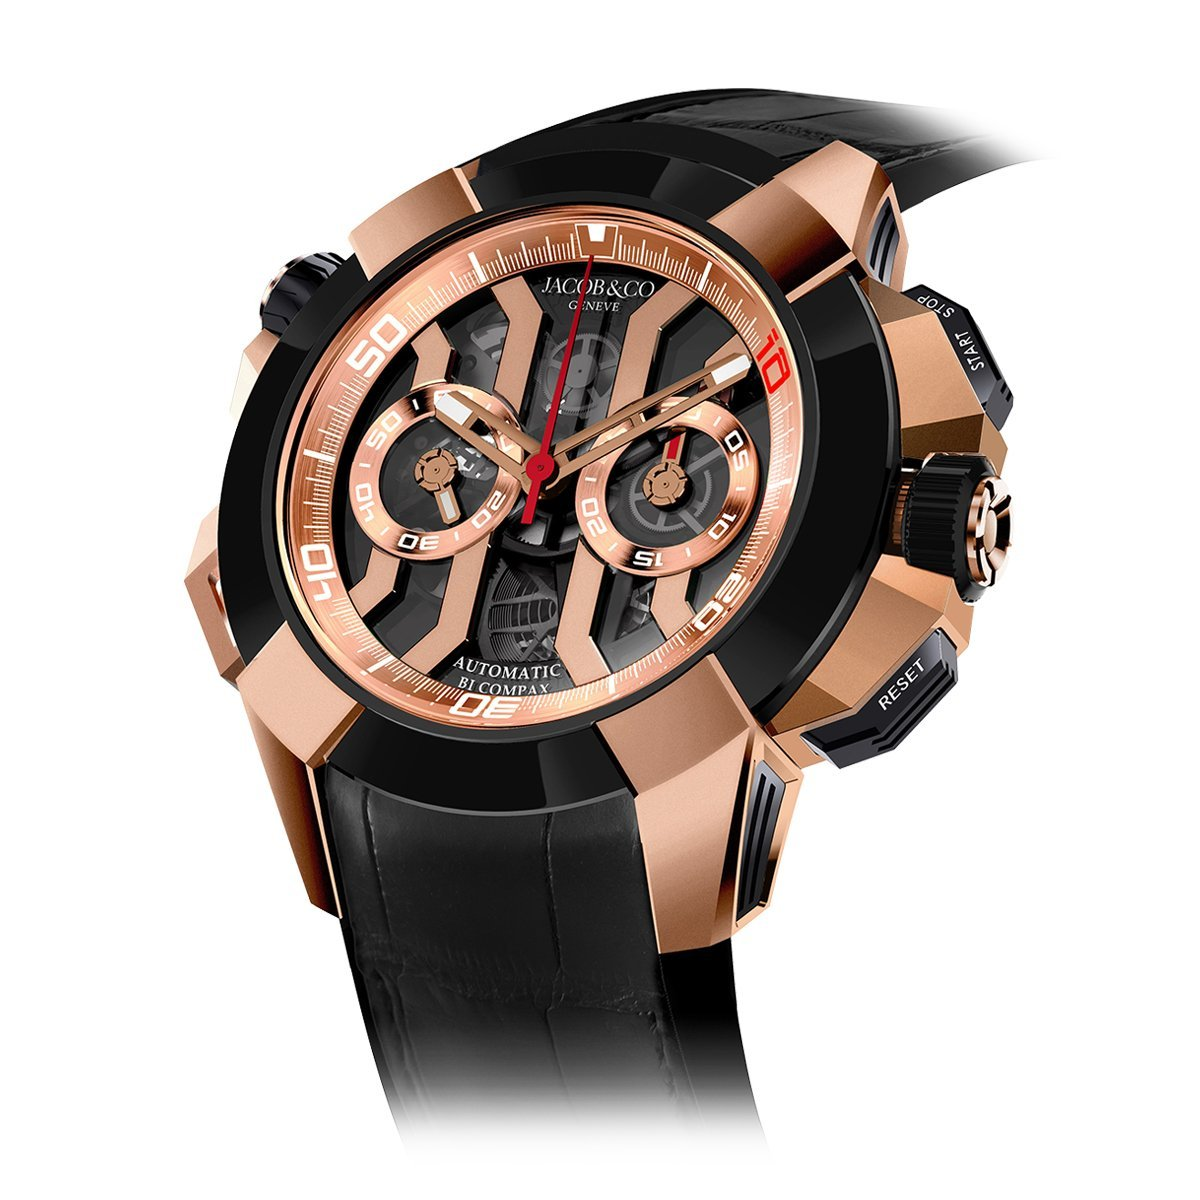 Jacob & Co. Epic X Chronograph Luis Figo - Watches & Crystals